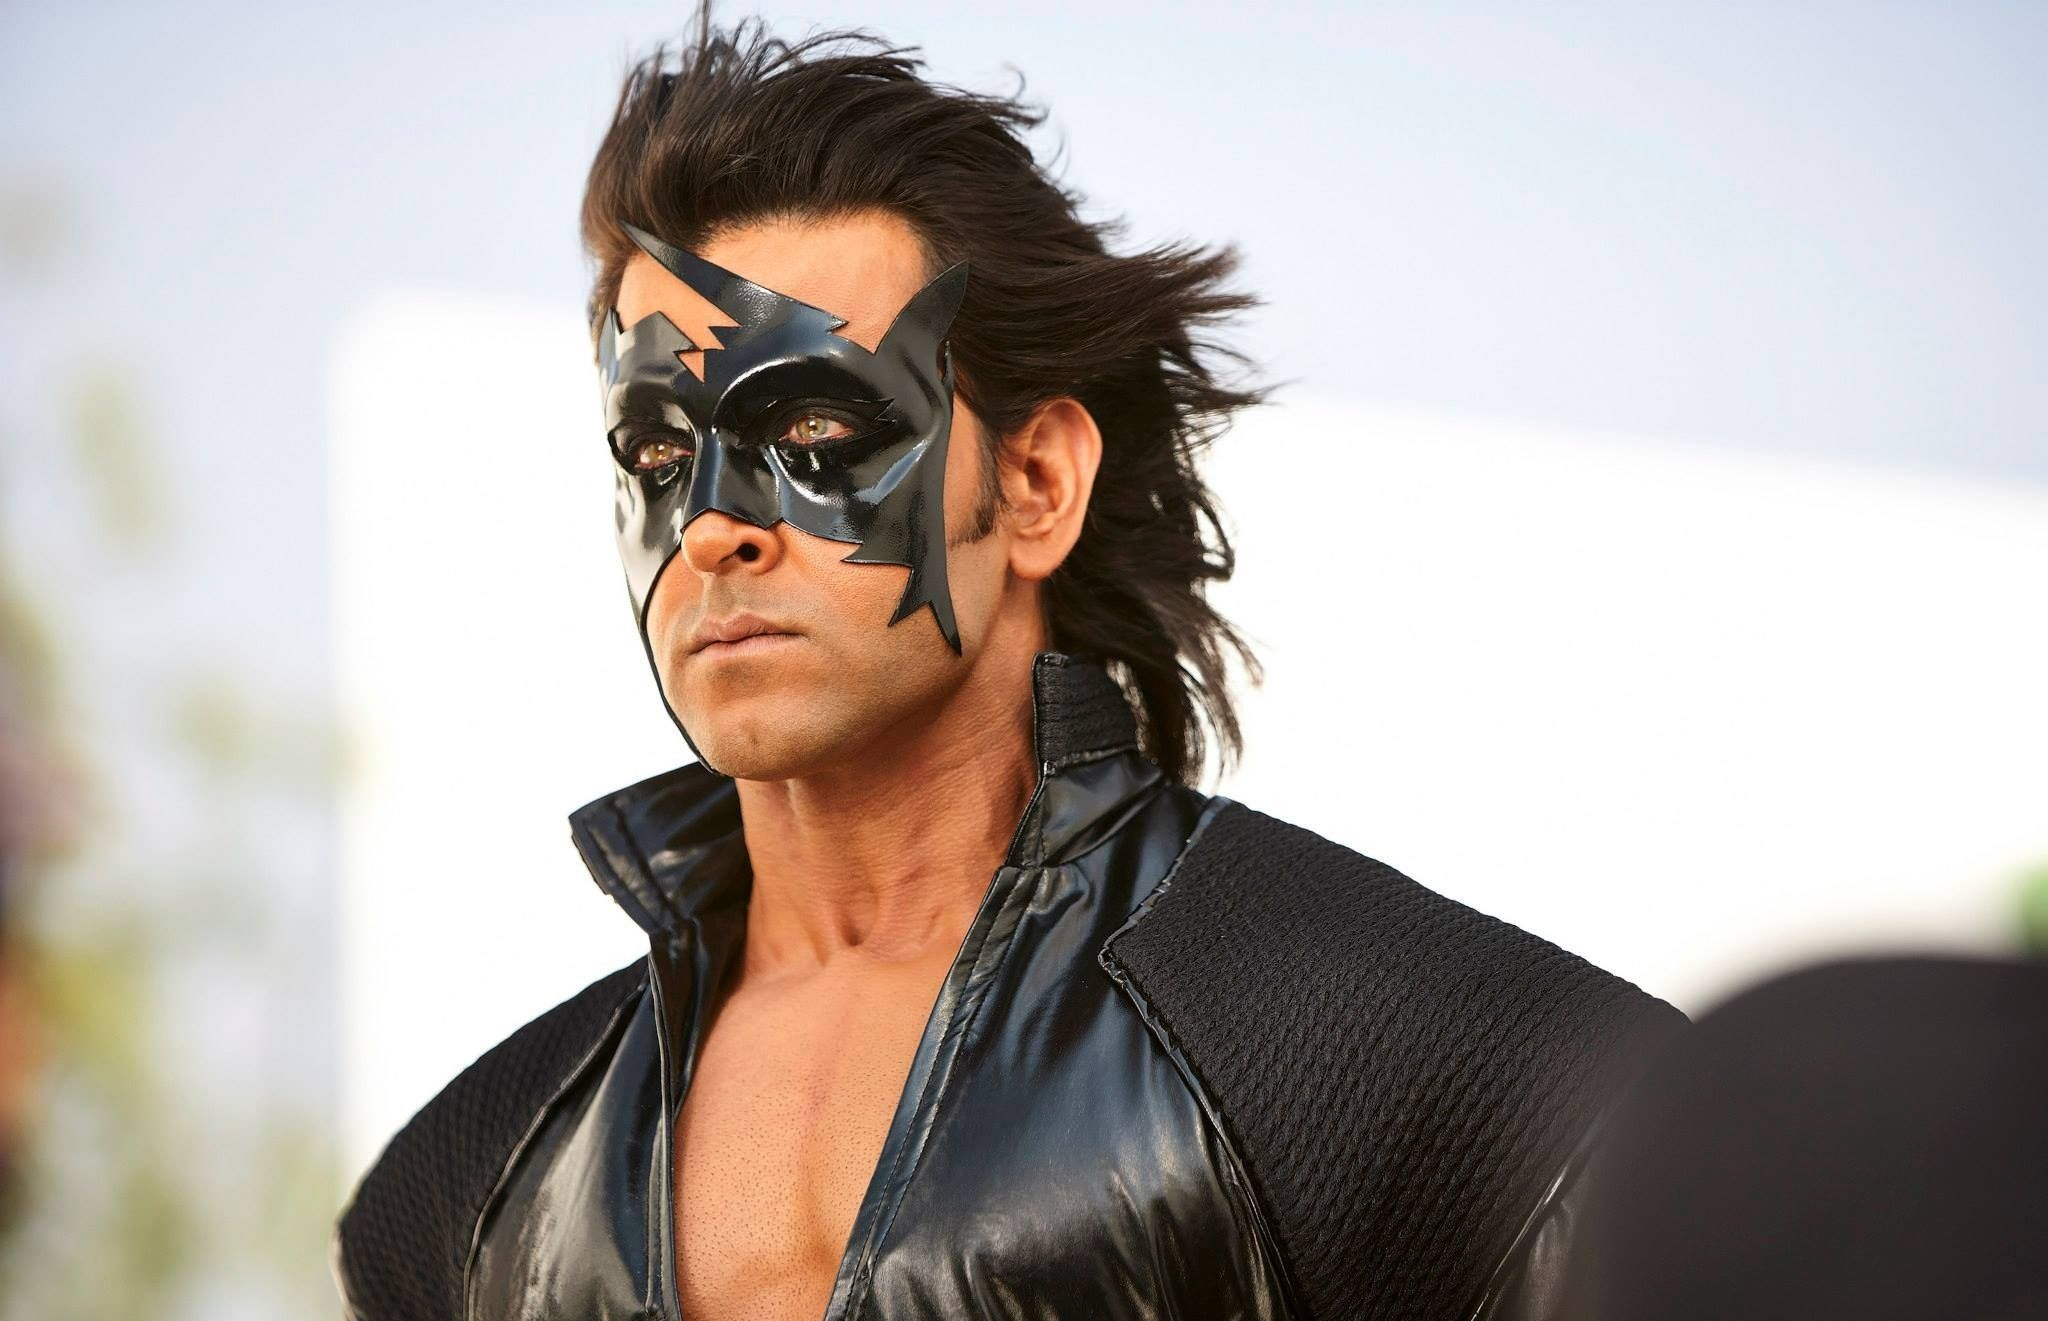 hrithik roshan and priyanka chopra in movie krrish 3 hd - HD 1920×1200